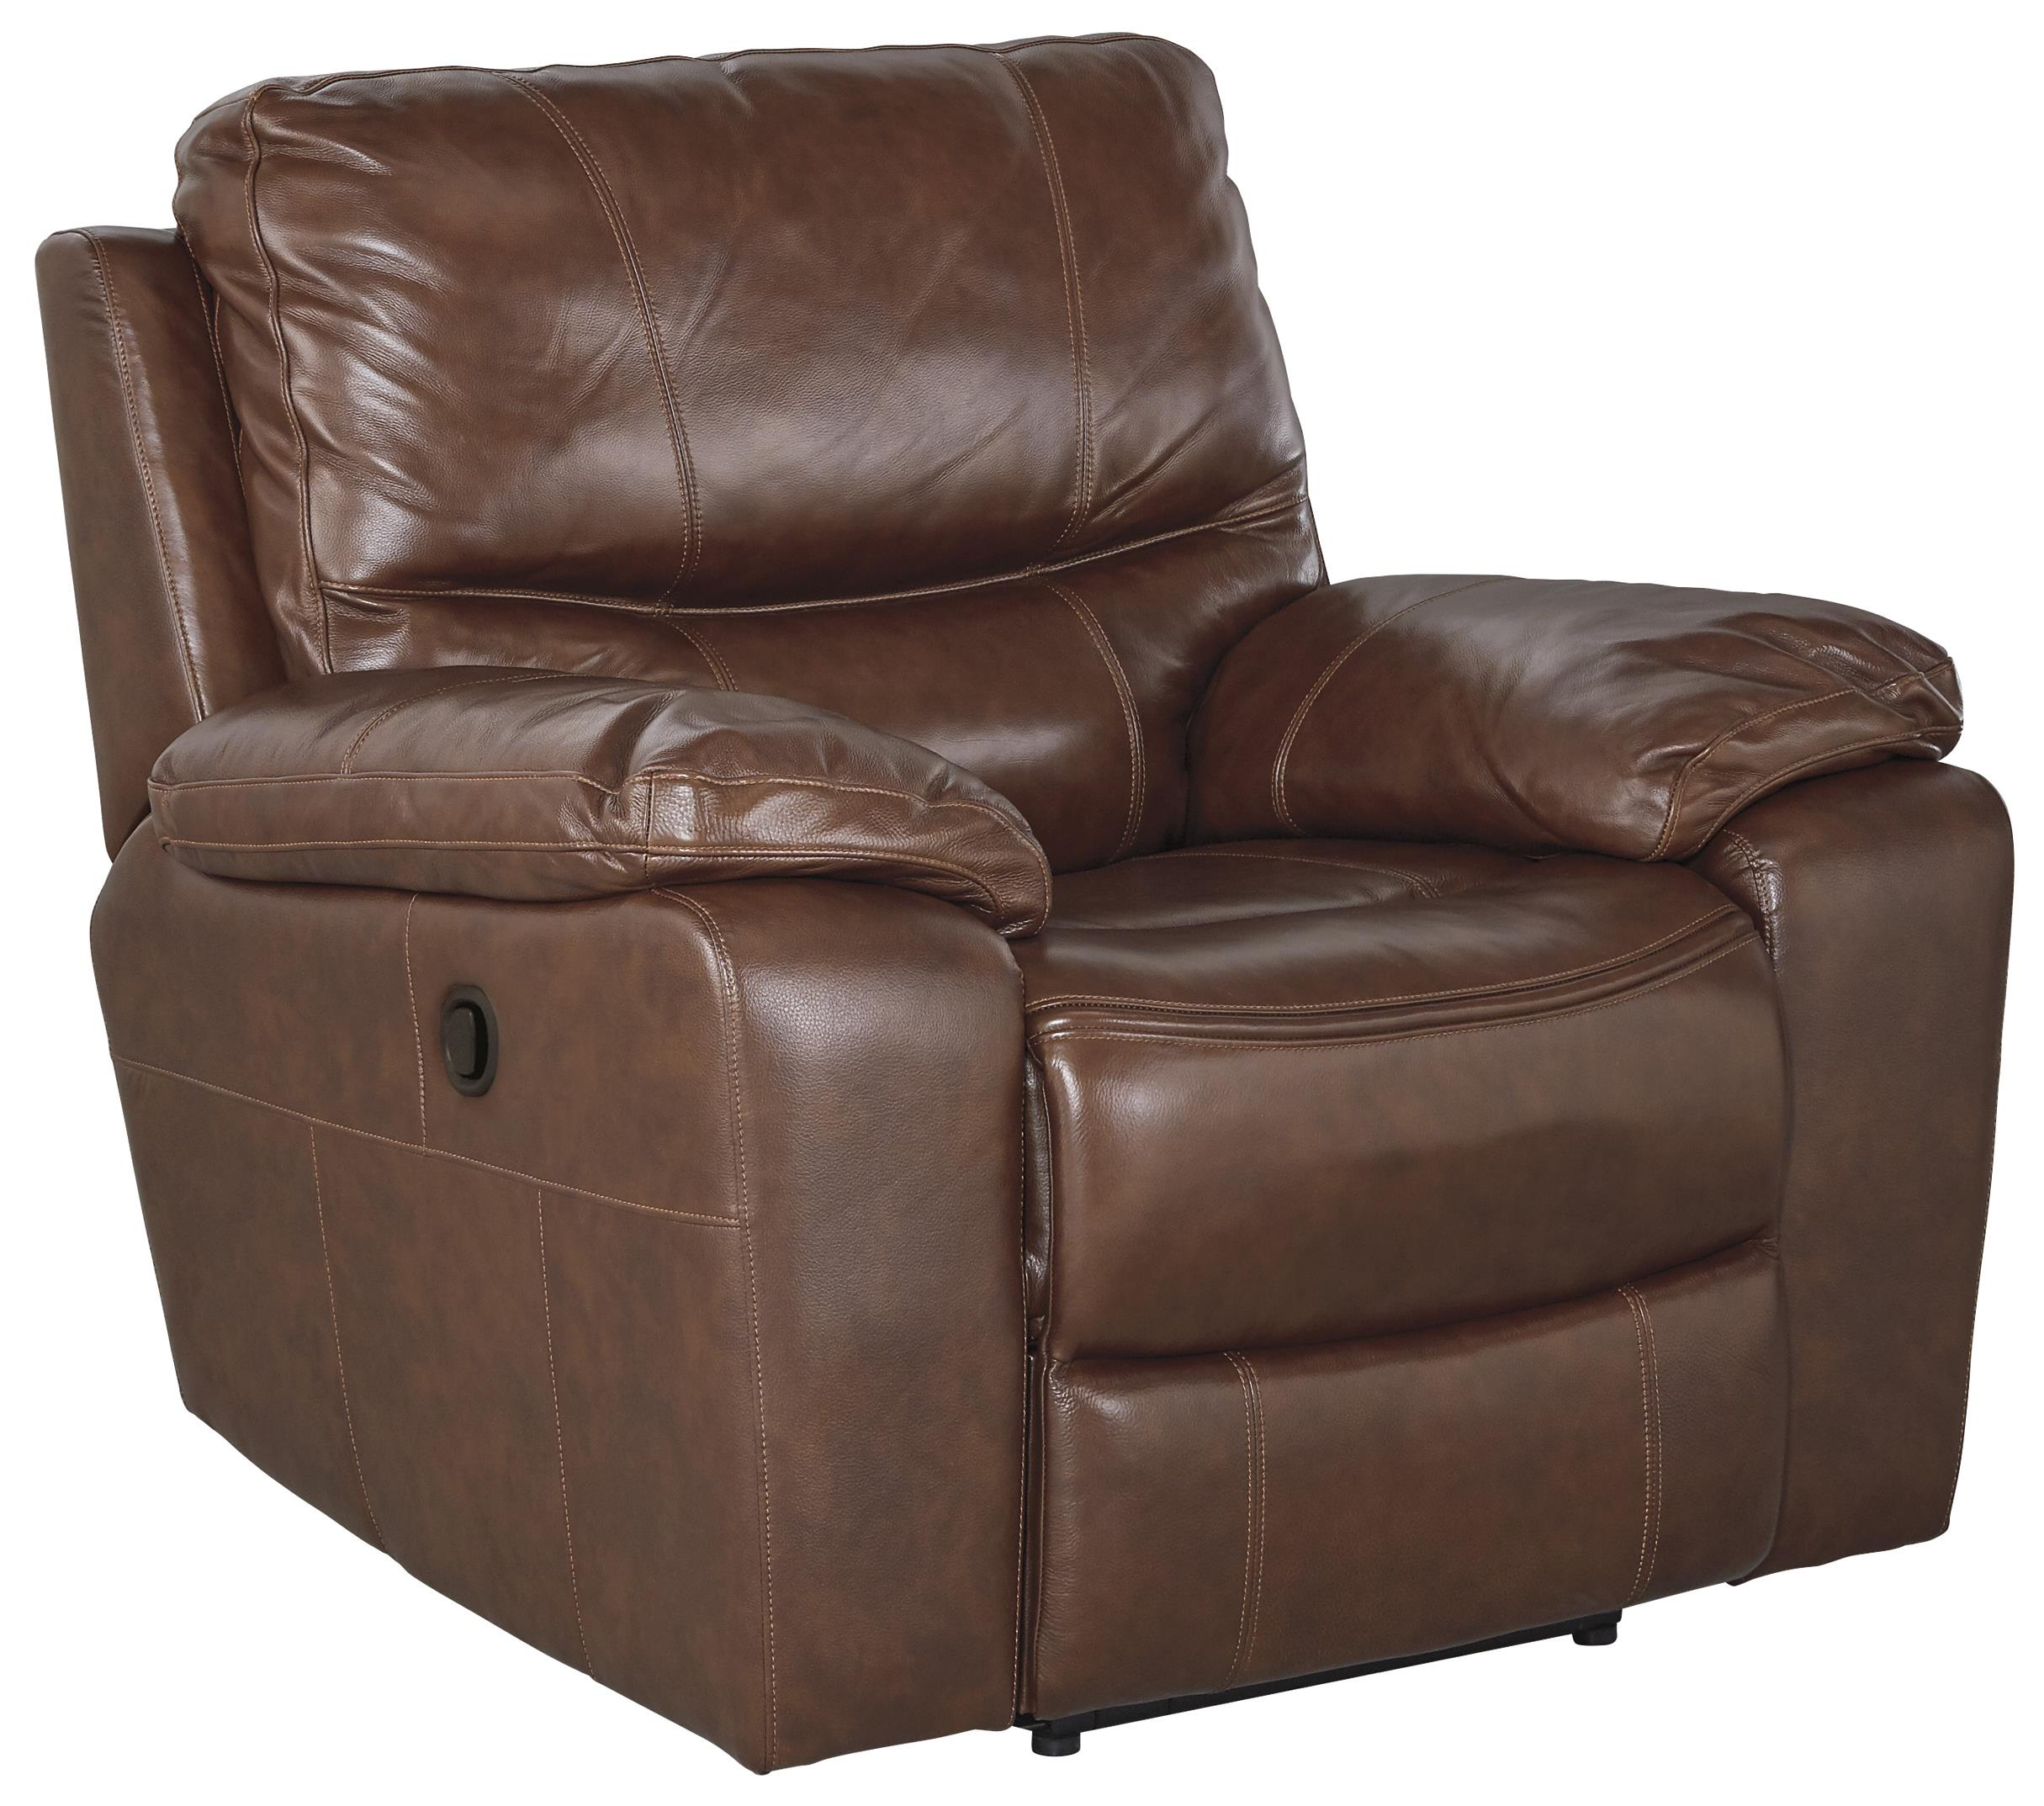 Signature Design by Ashley Panache Rocker Recliner - Item Number: U7290025